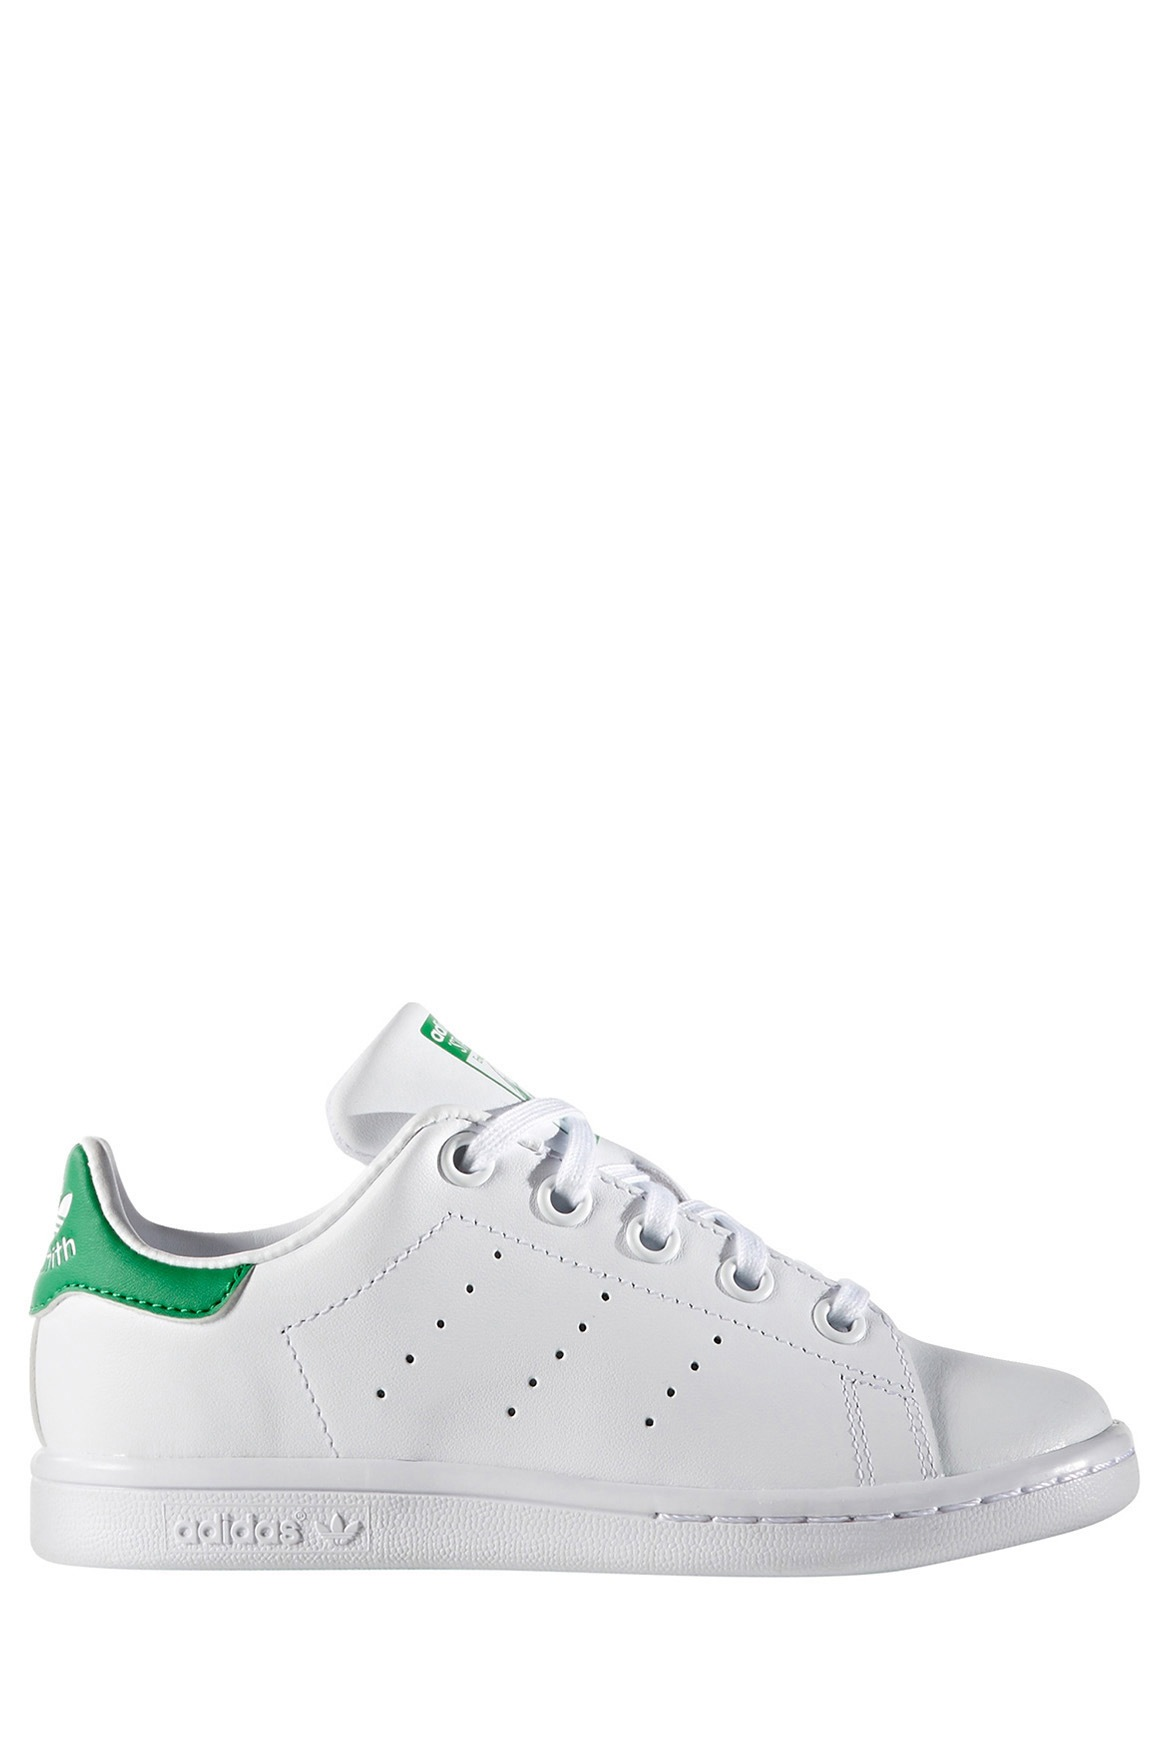 adidas stan smith ps myer online